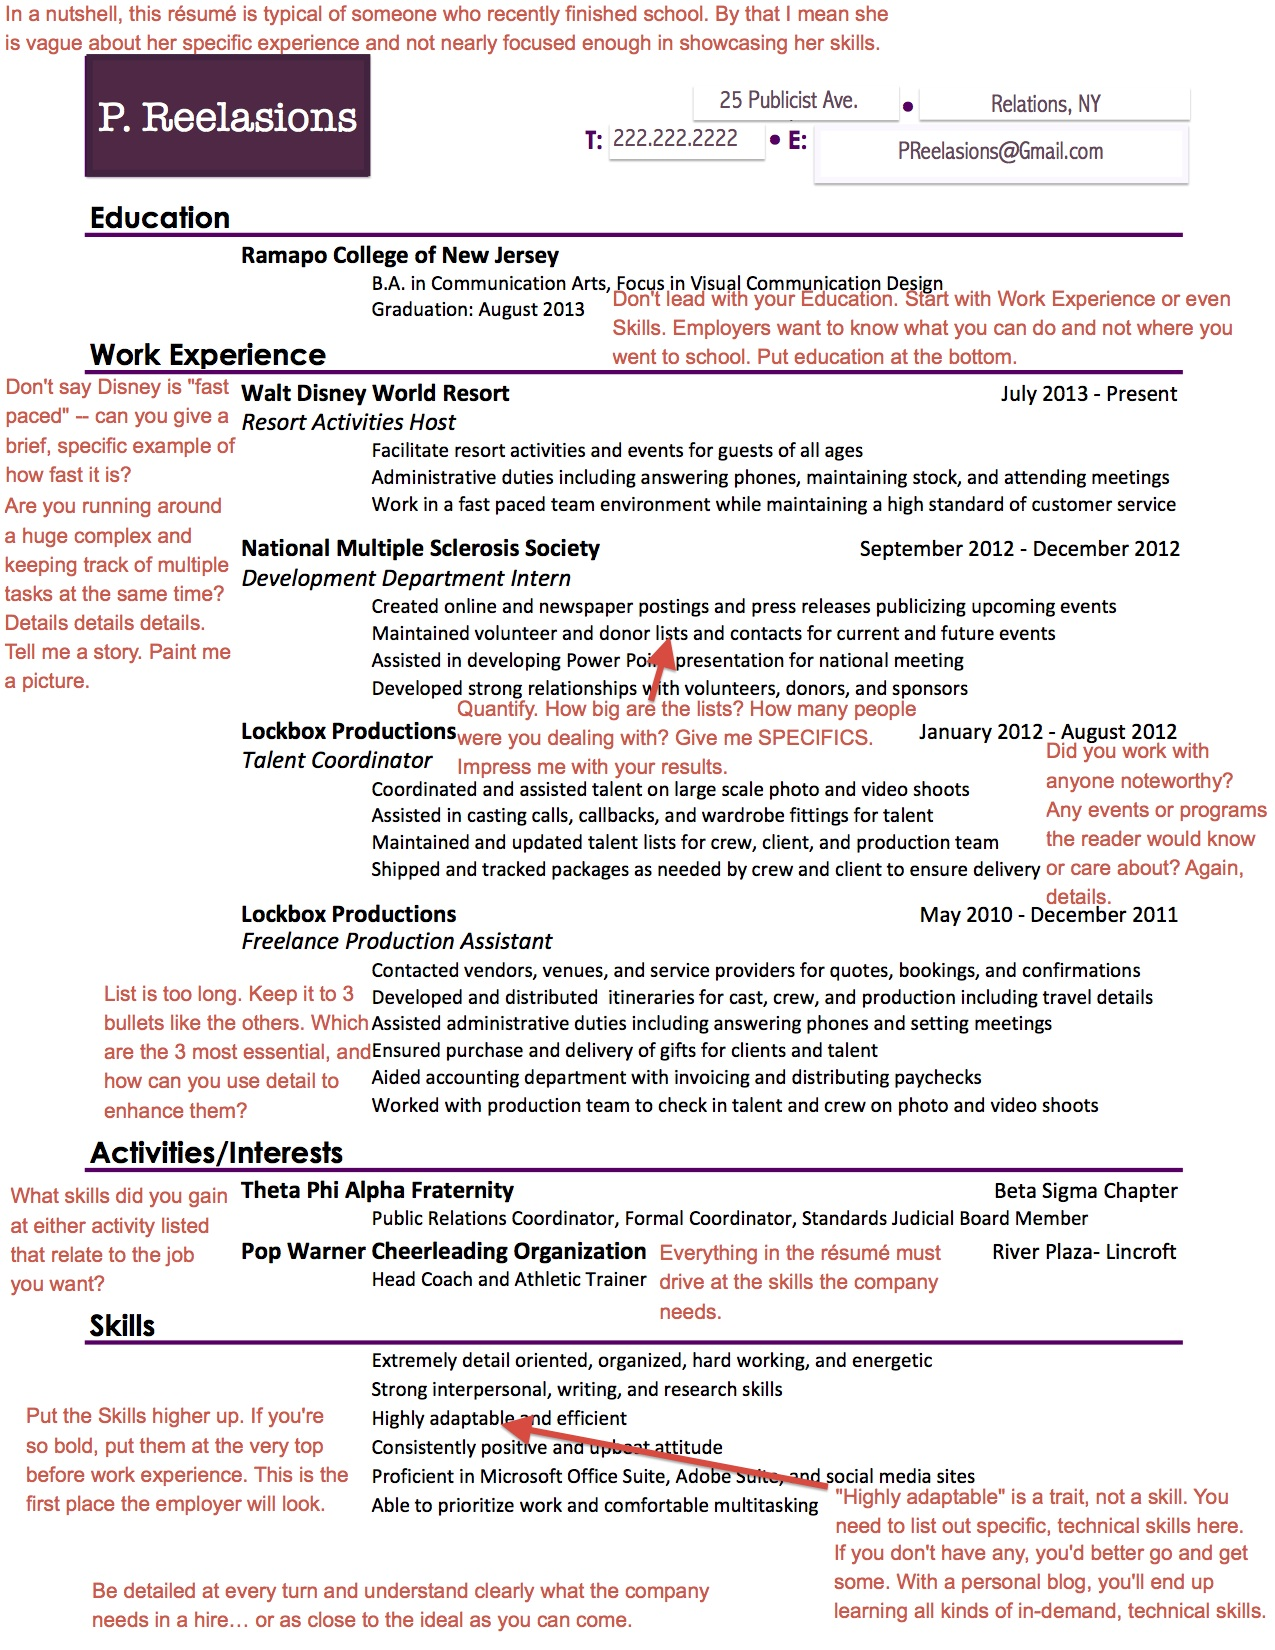 P.Reelasions Resume JPEG  Resume For College Graduate